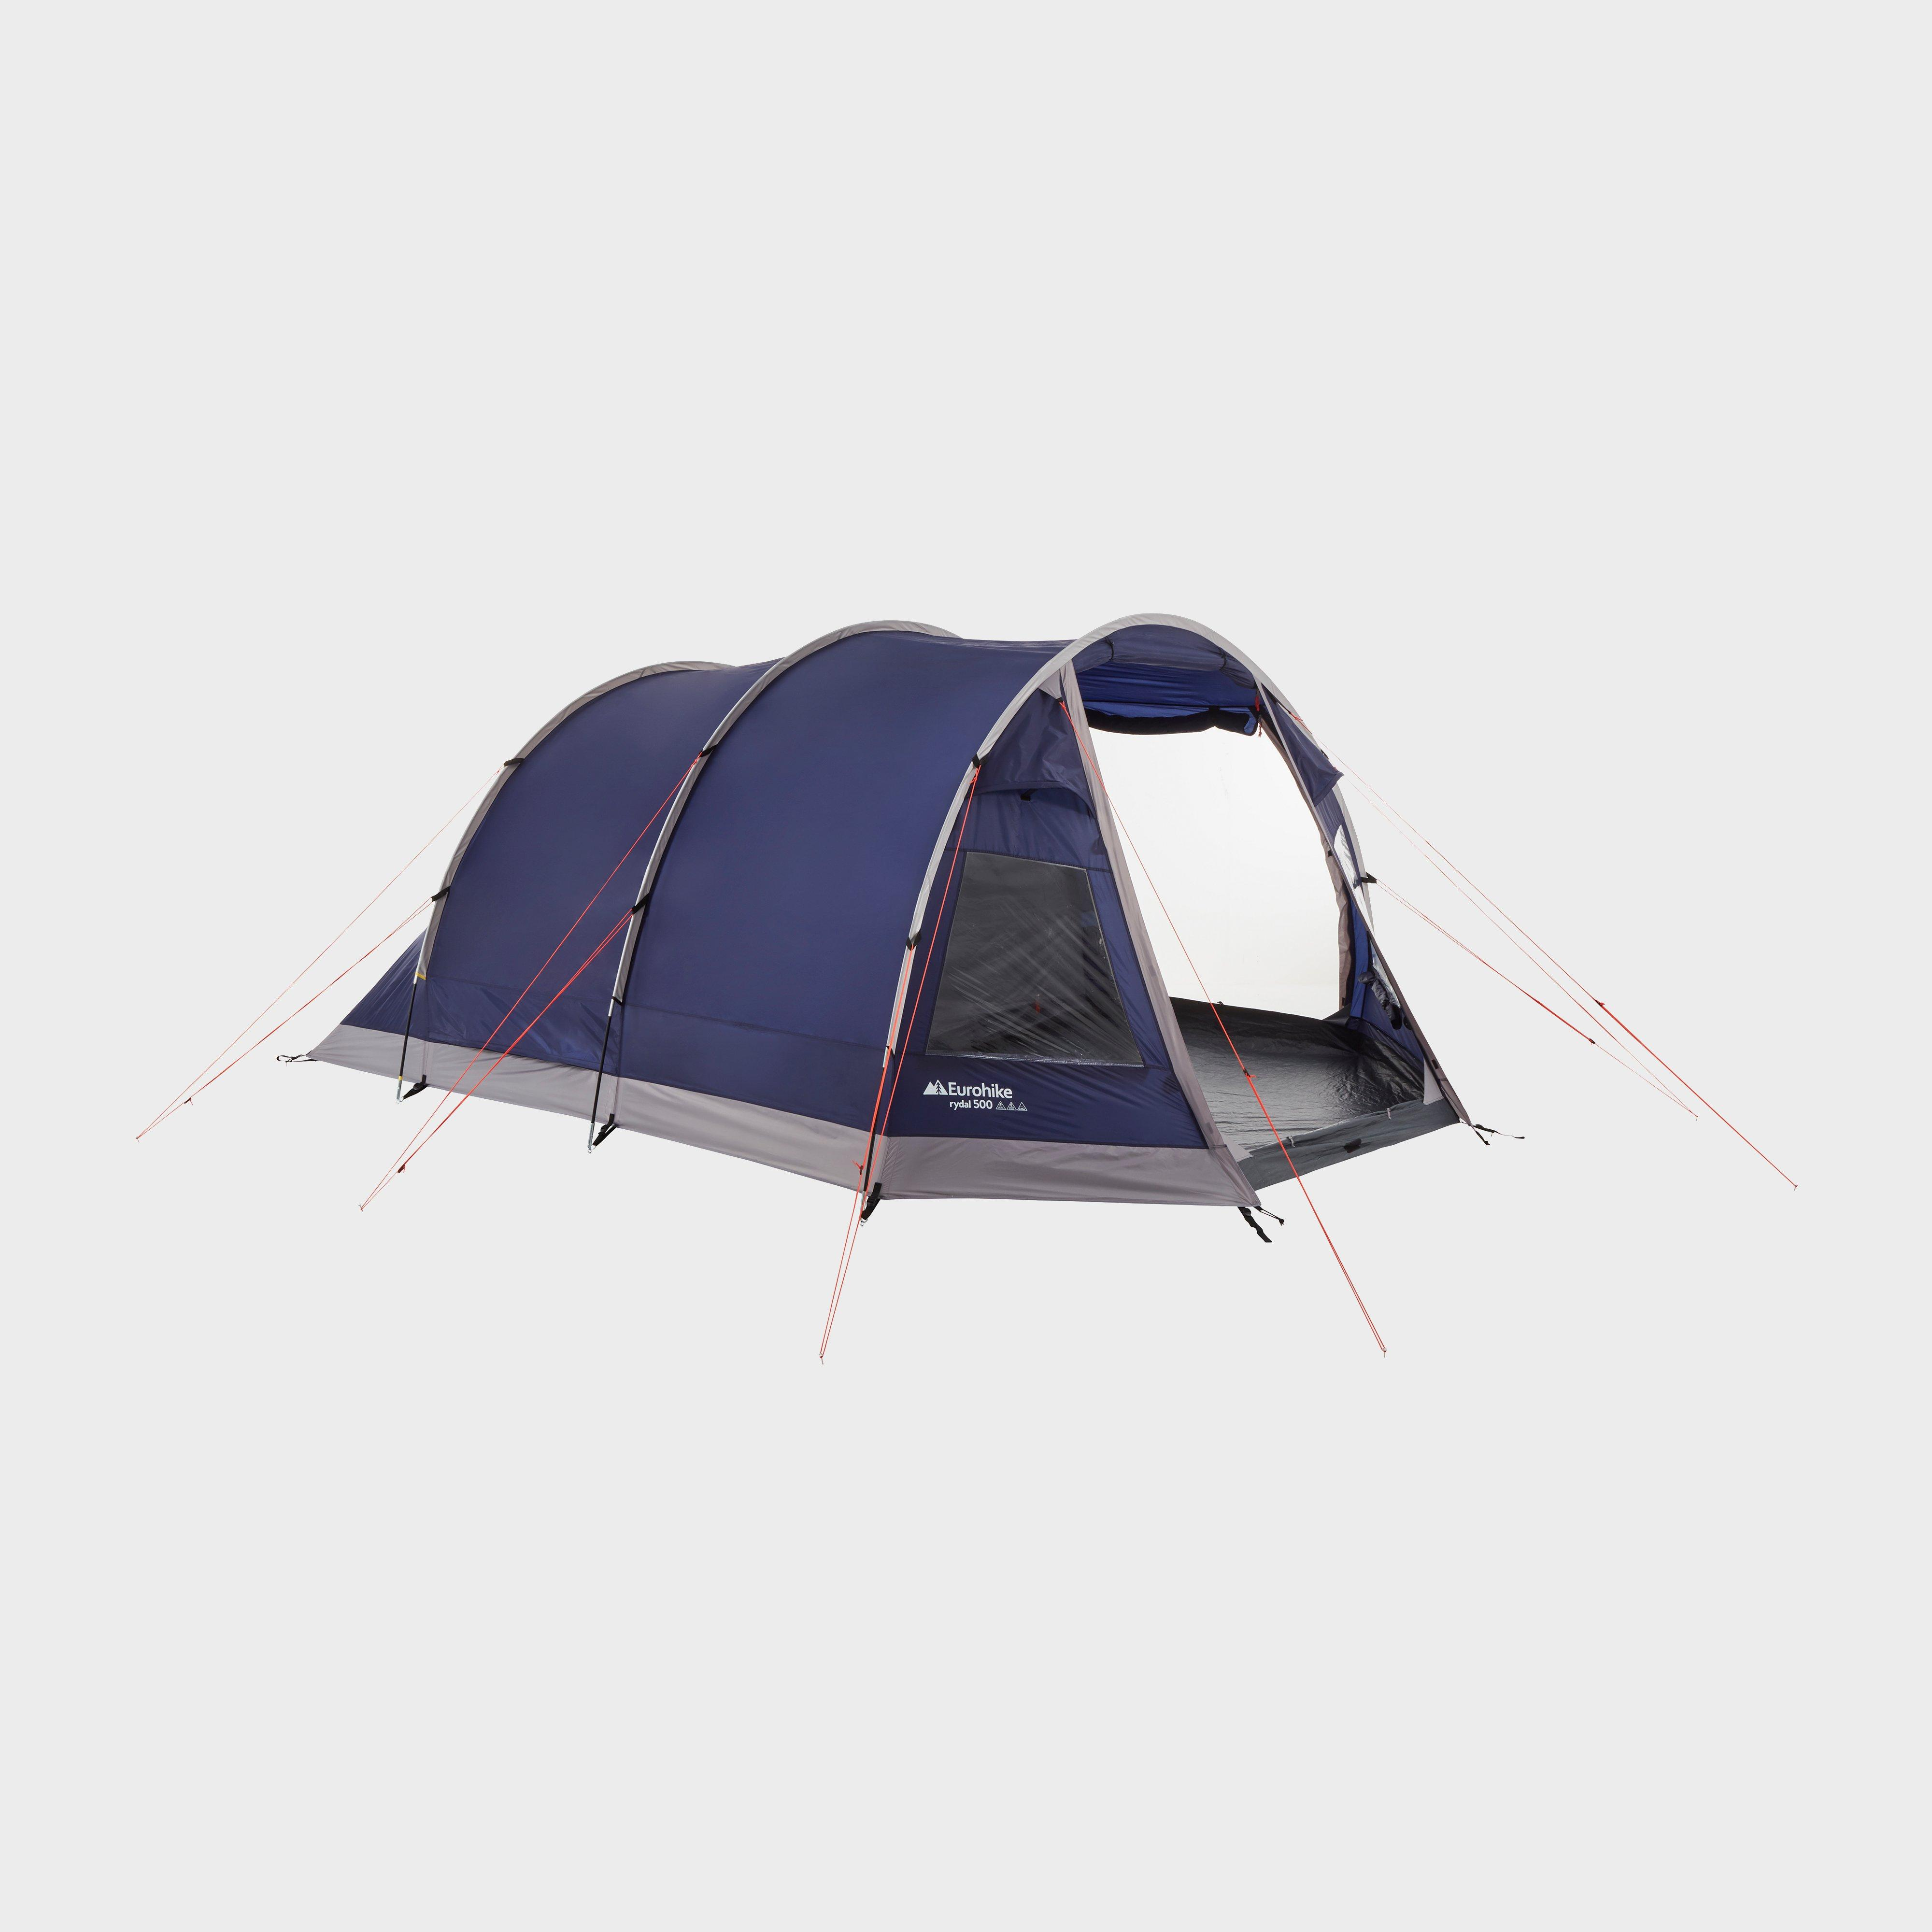 Eurohike Rydal 500 5 Person Tent - Navy/Nvy, Navy/NVY